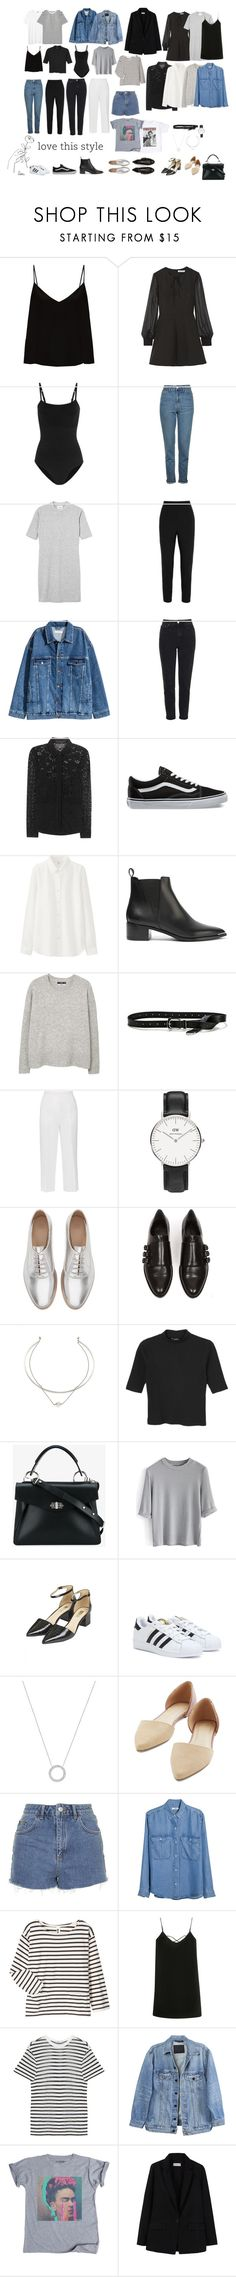 """""""WARDROBE 2017.1"""" by juliaviana ❤ liked on Polyvore featuring Raey, Elizabeth and James, Wolford, Topshop, Monki, Dolce&Gabbana, Burberry, Vans, Uniqlo and Acne Studios"""